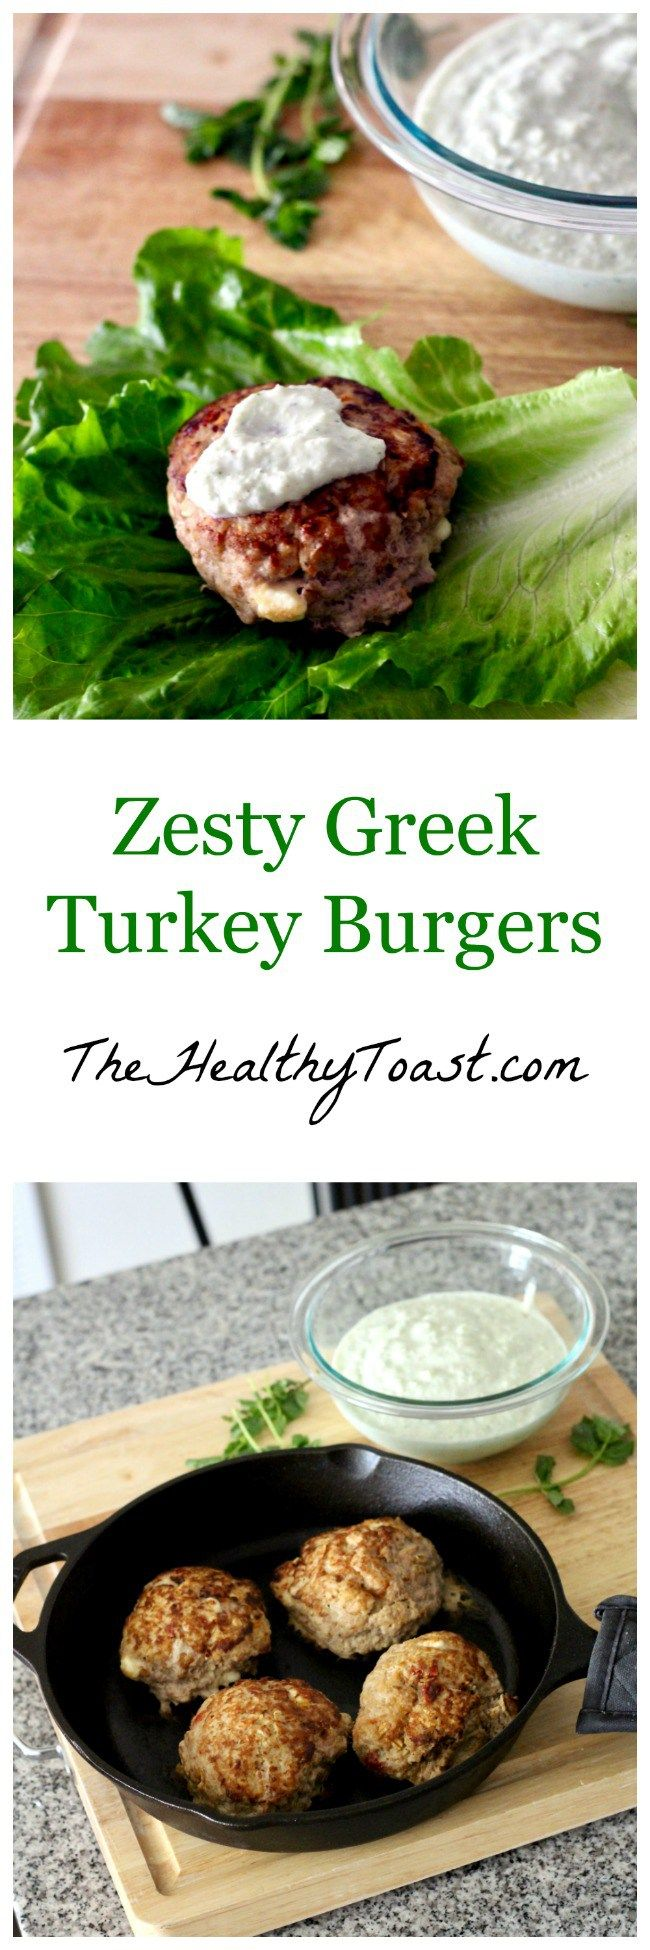 These Greek Turkey Burgers are bursting with flavor as they're studded with sundried tomatoes and feta cheese, then topped with a cool and creamy tzatziki sauce. I promise they'll become one of you…